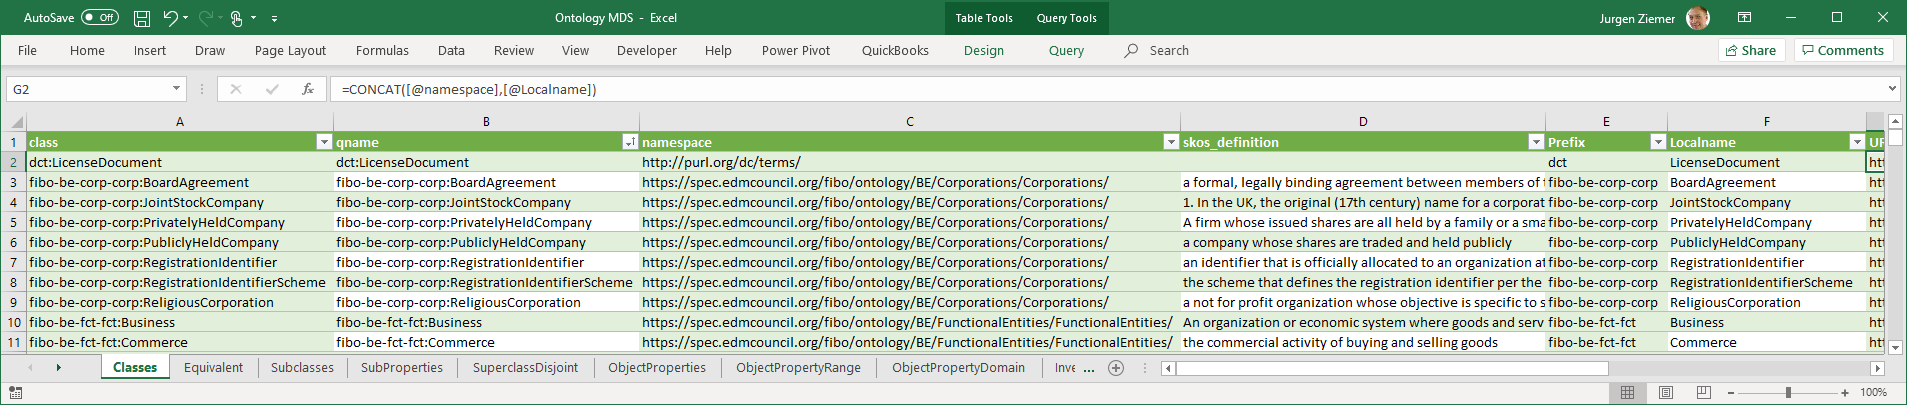 The CODT ontology Metadata Set in MS-Excel